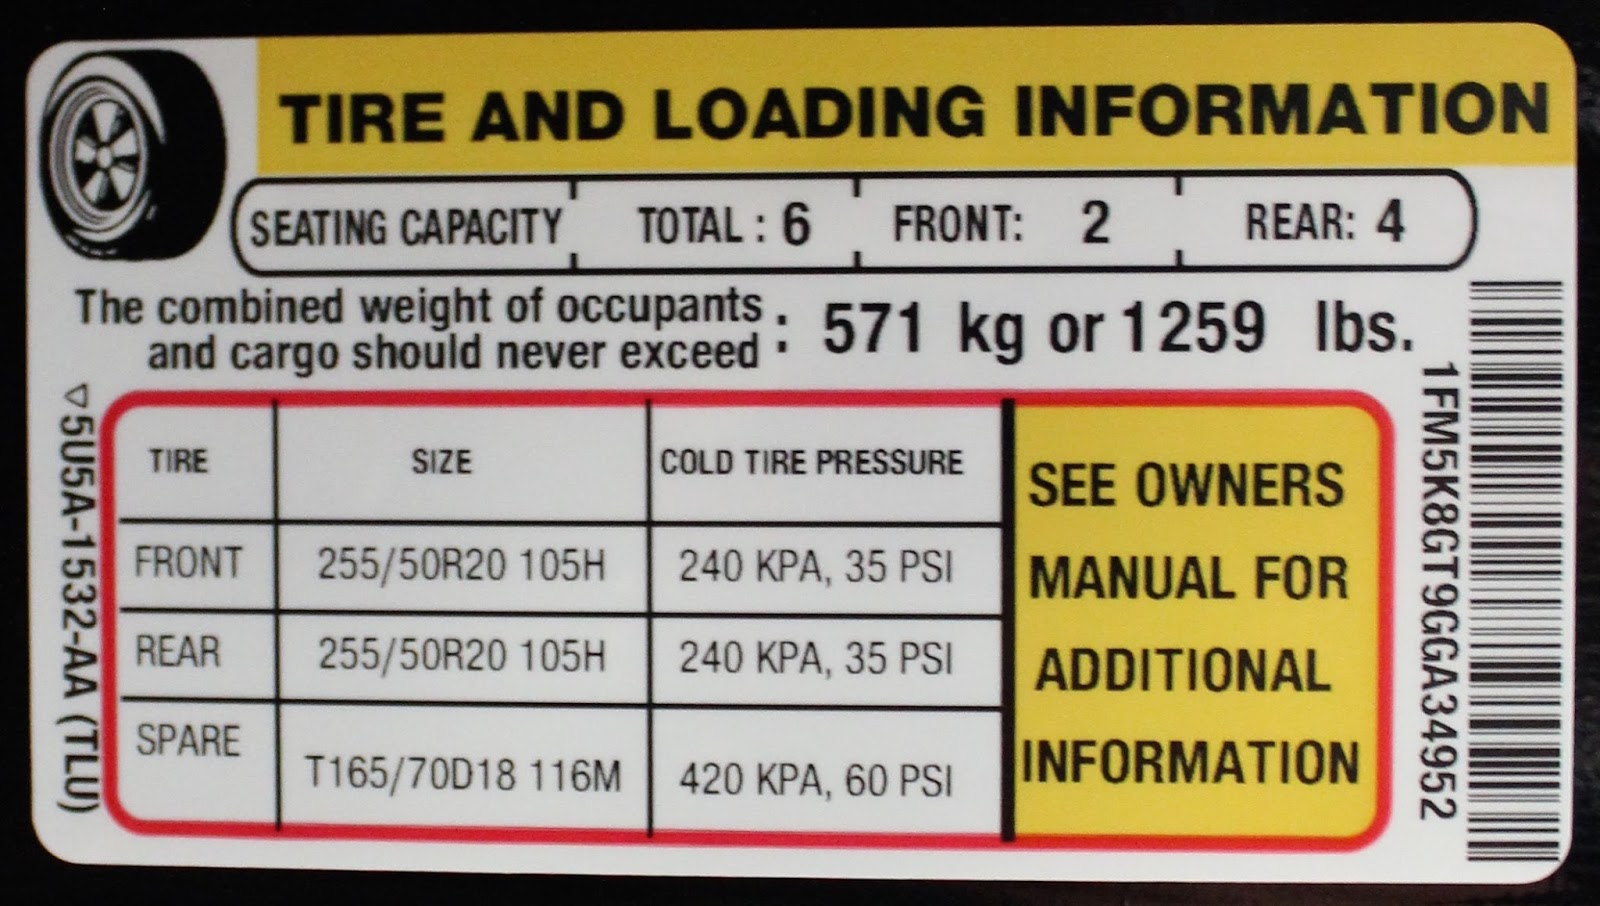 You Can Find This Information On The Edge Of The Drivers Door Or Door Frame In Many Vehicles Refer To The Cold Tire Pressure For Your Front Rear